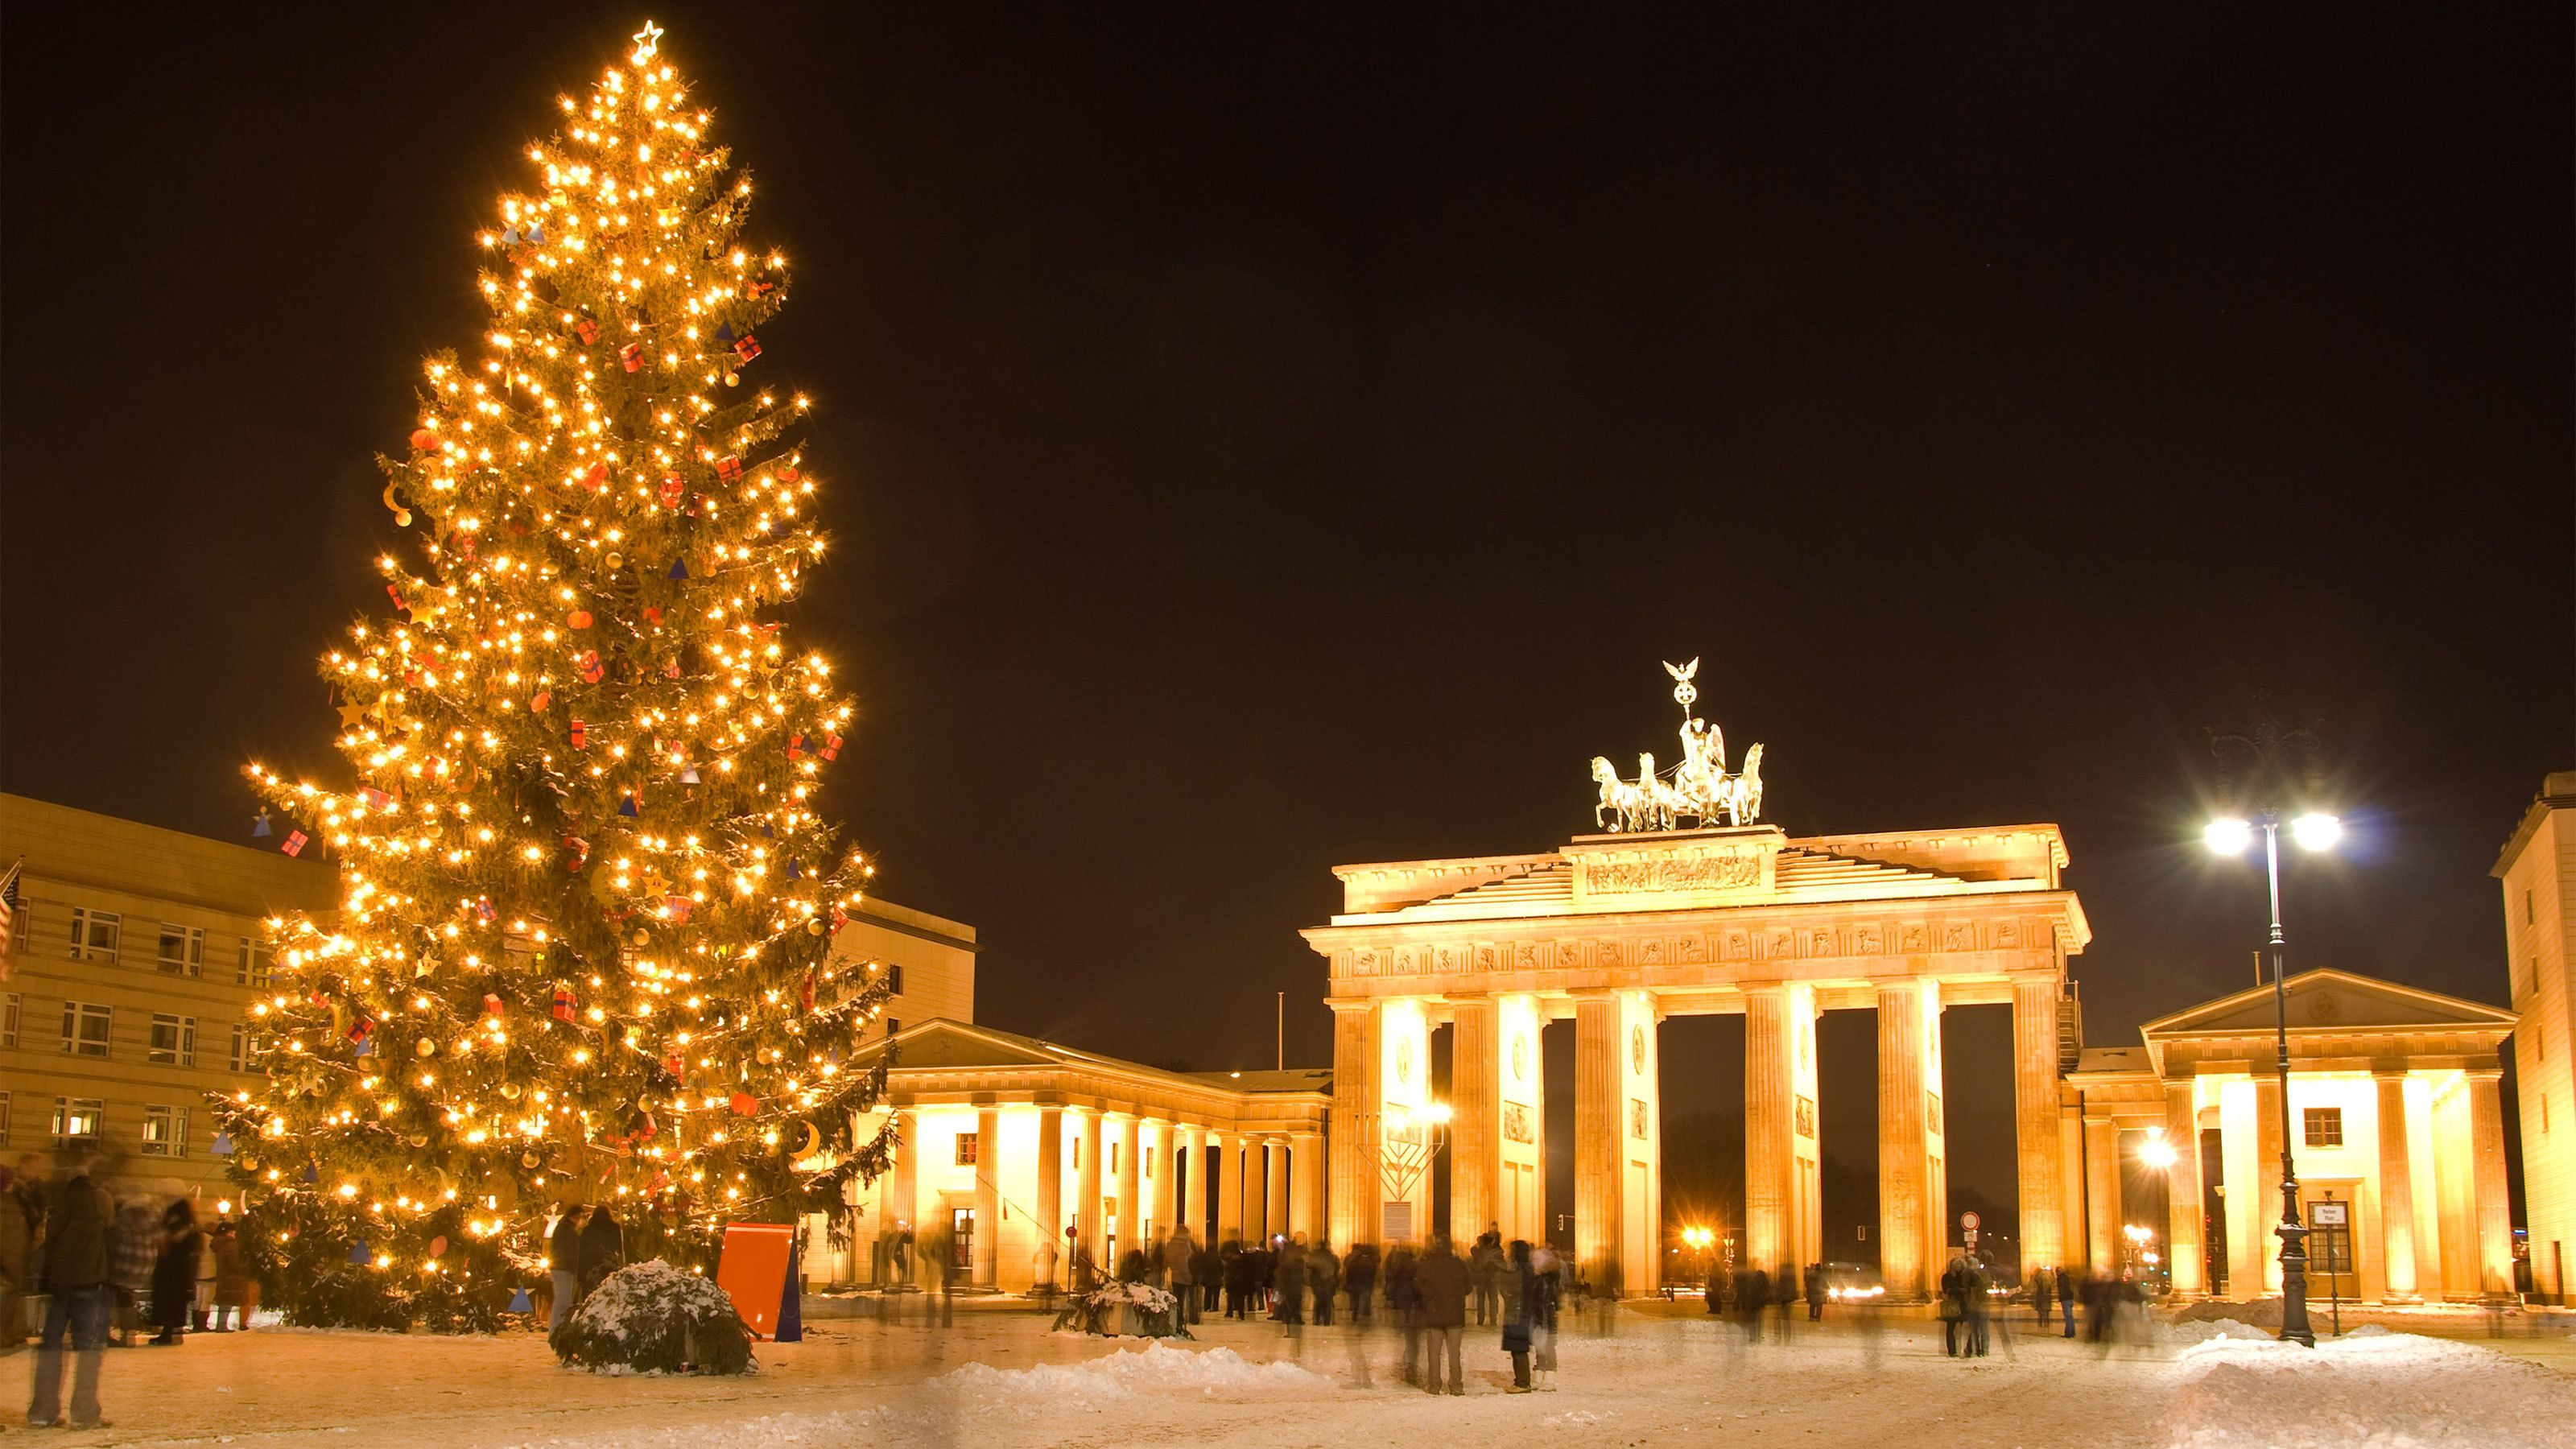 Christmas tree in a square in Berlin